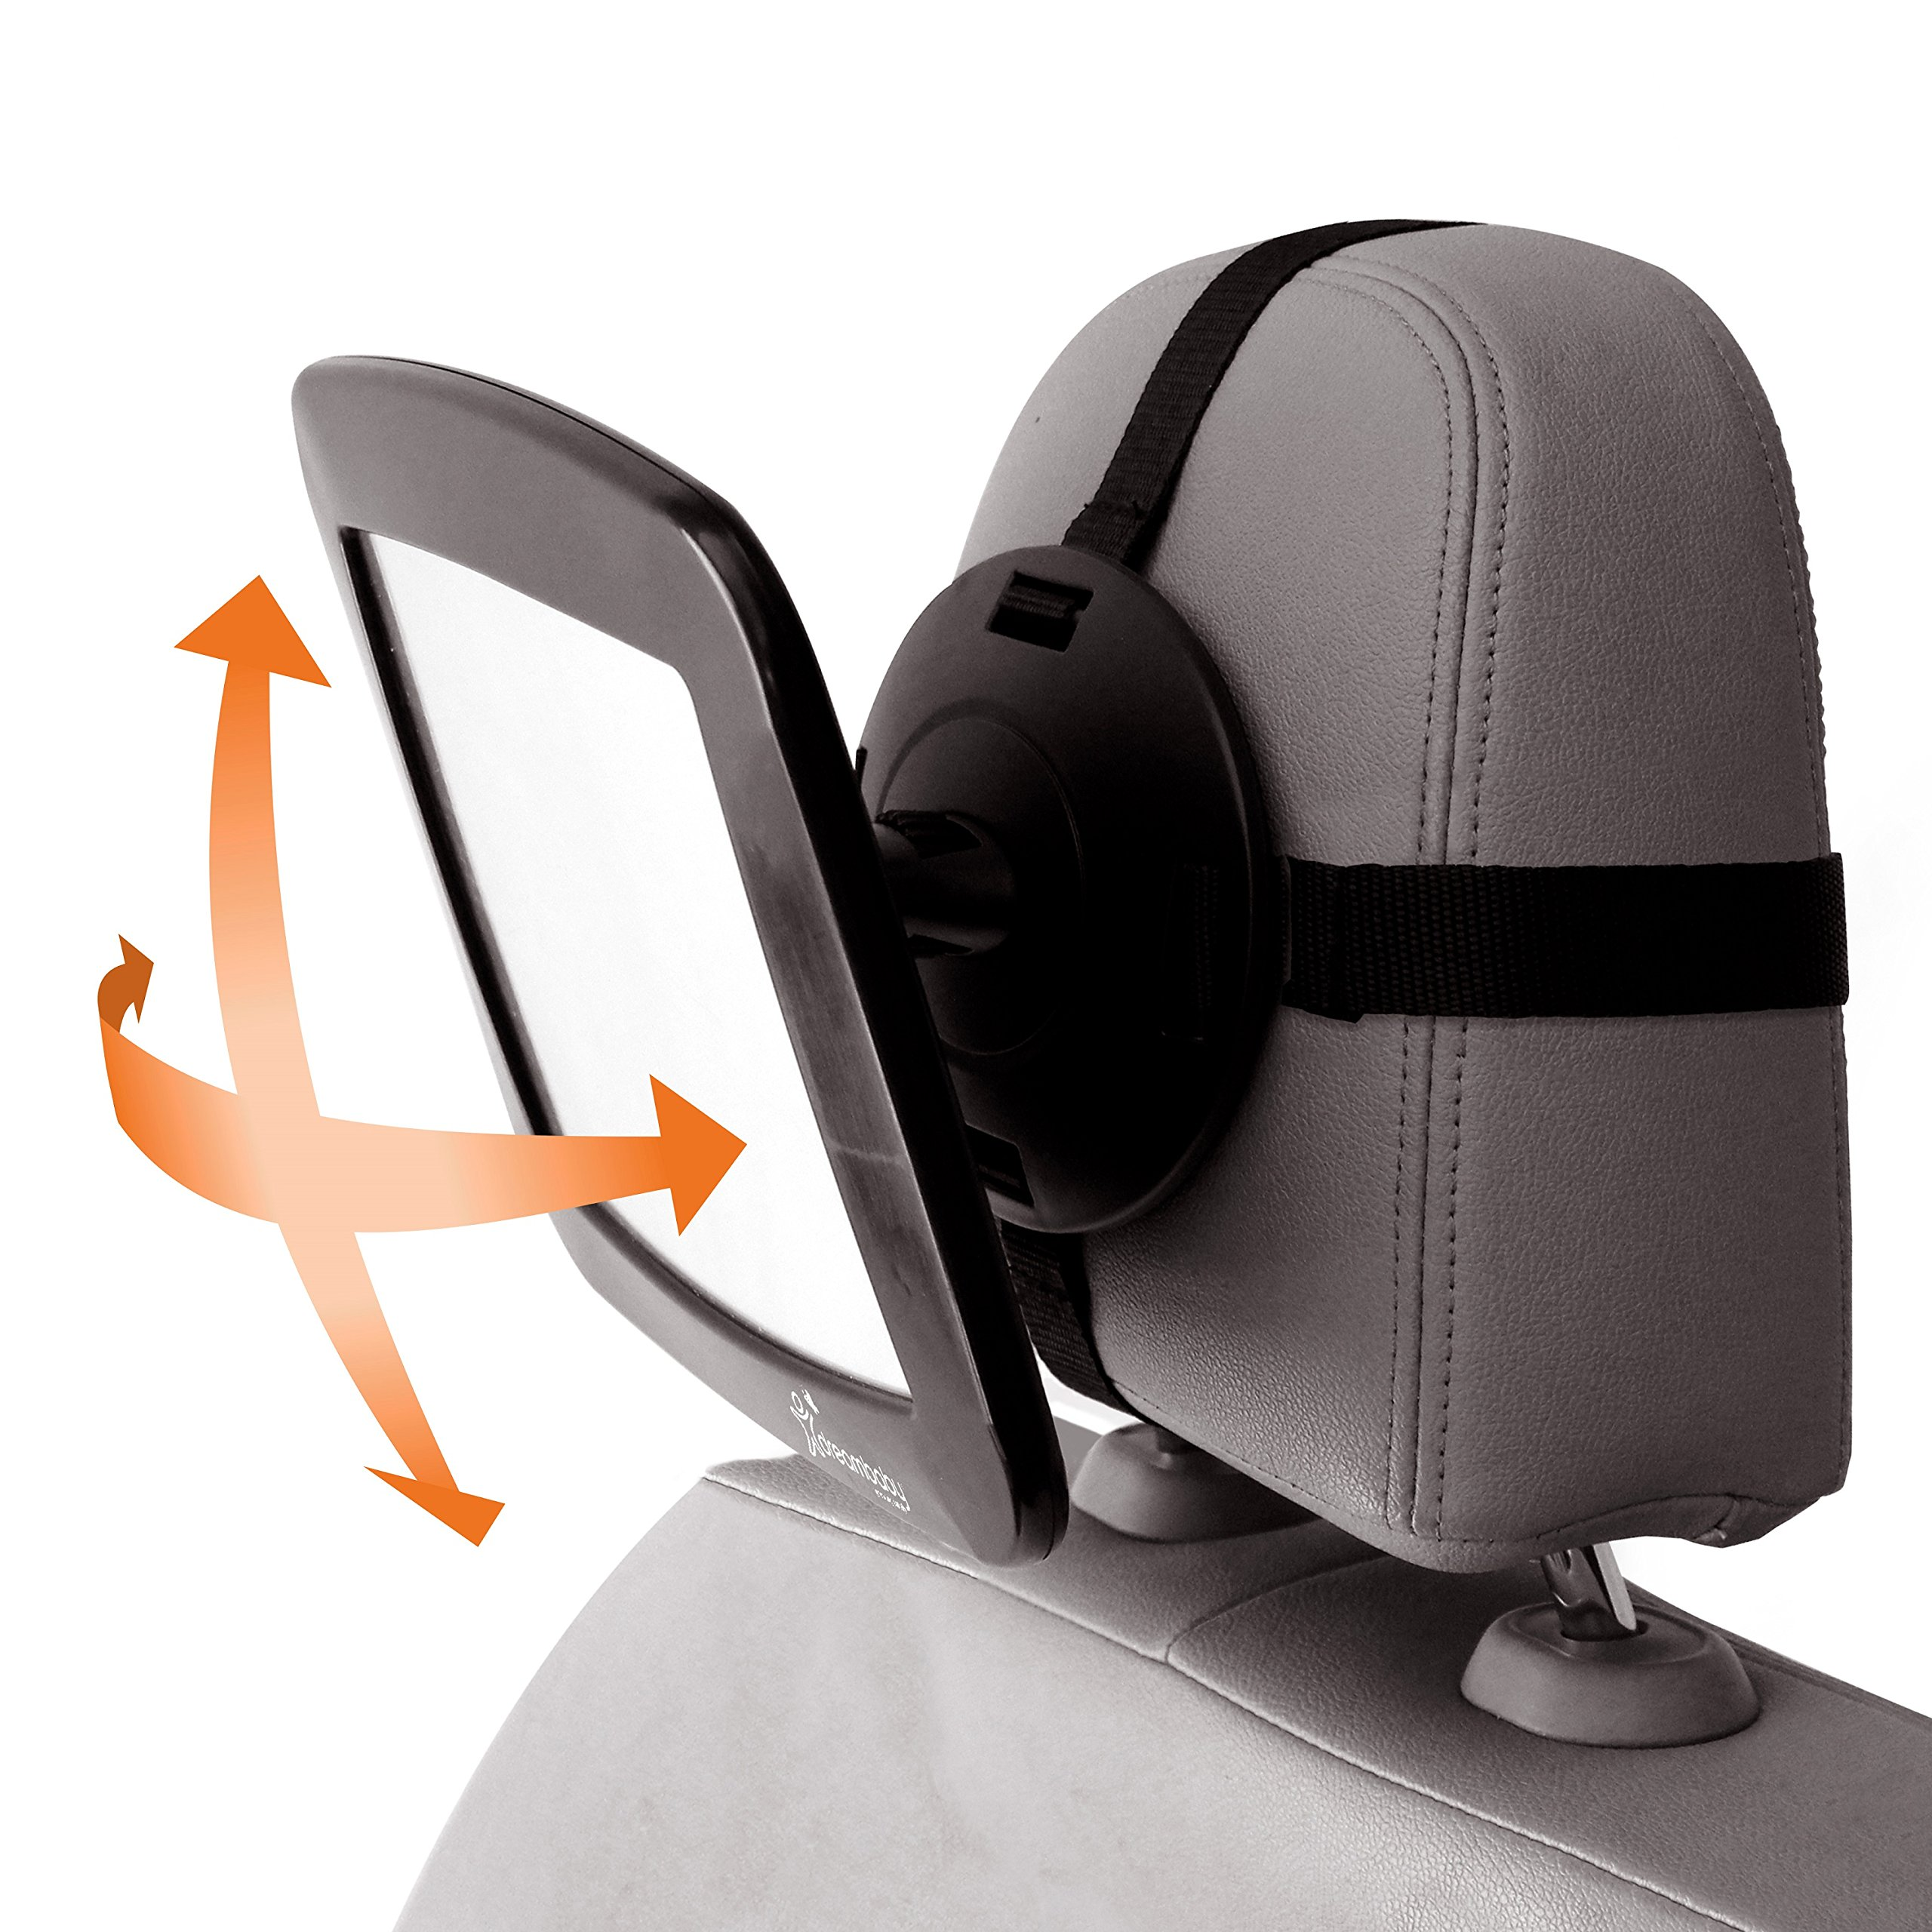 Dreambaby Adjustable Backseat Mirror (1 Pack) by Dreambaby (Image #9)